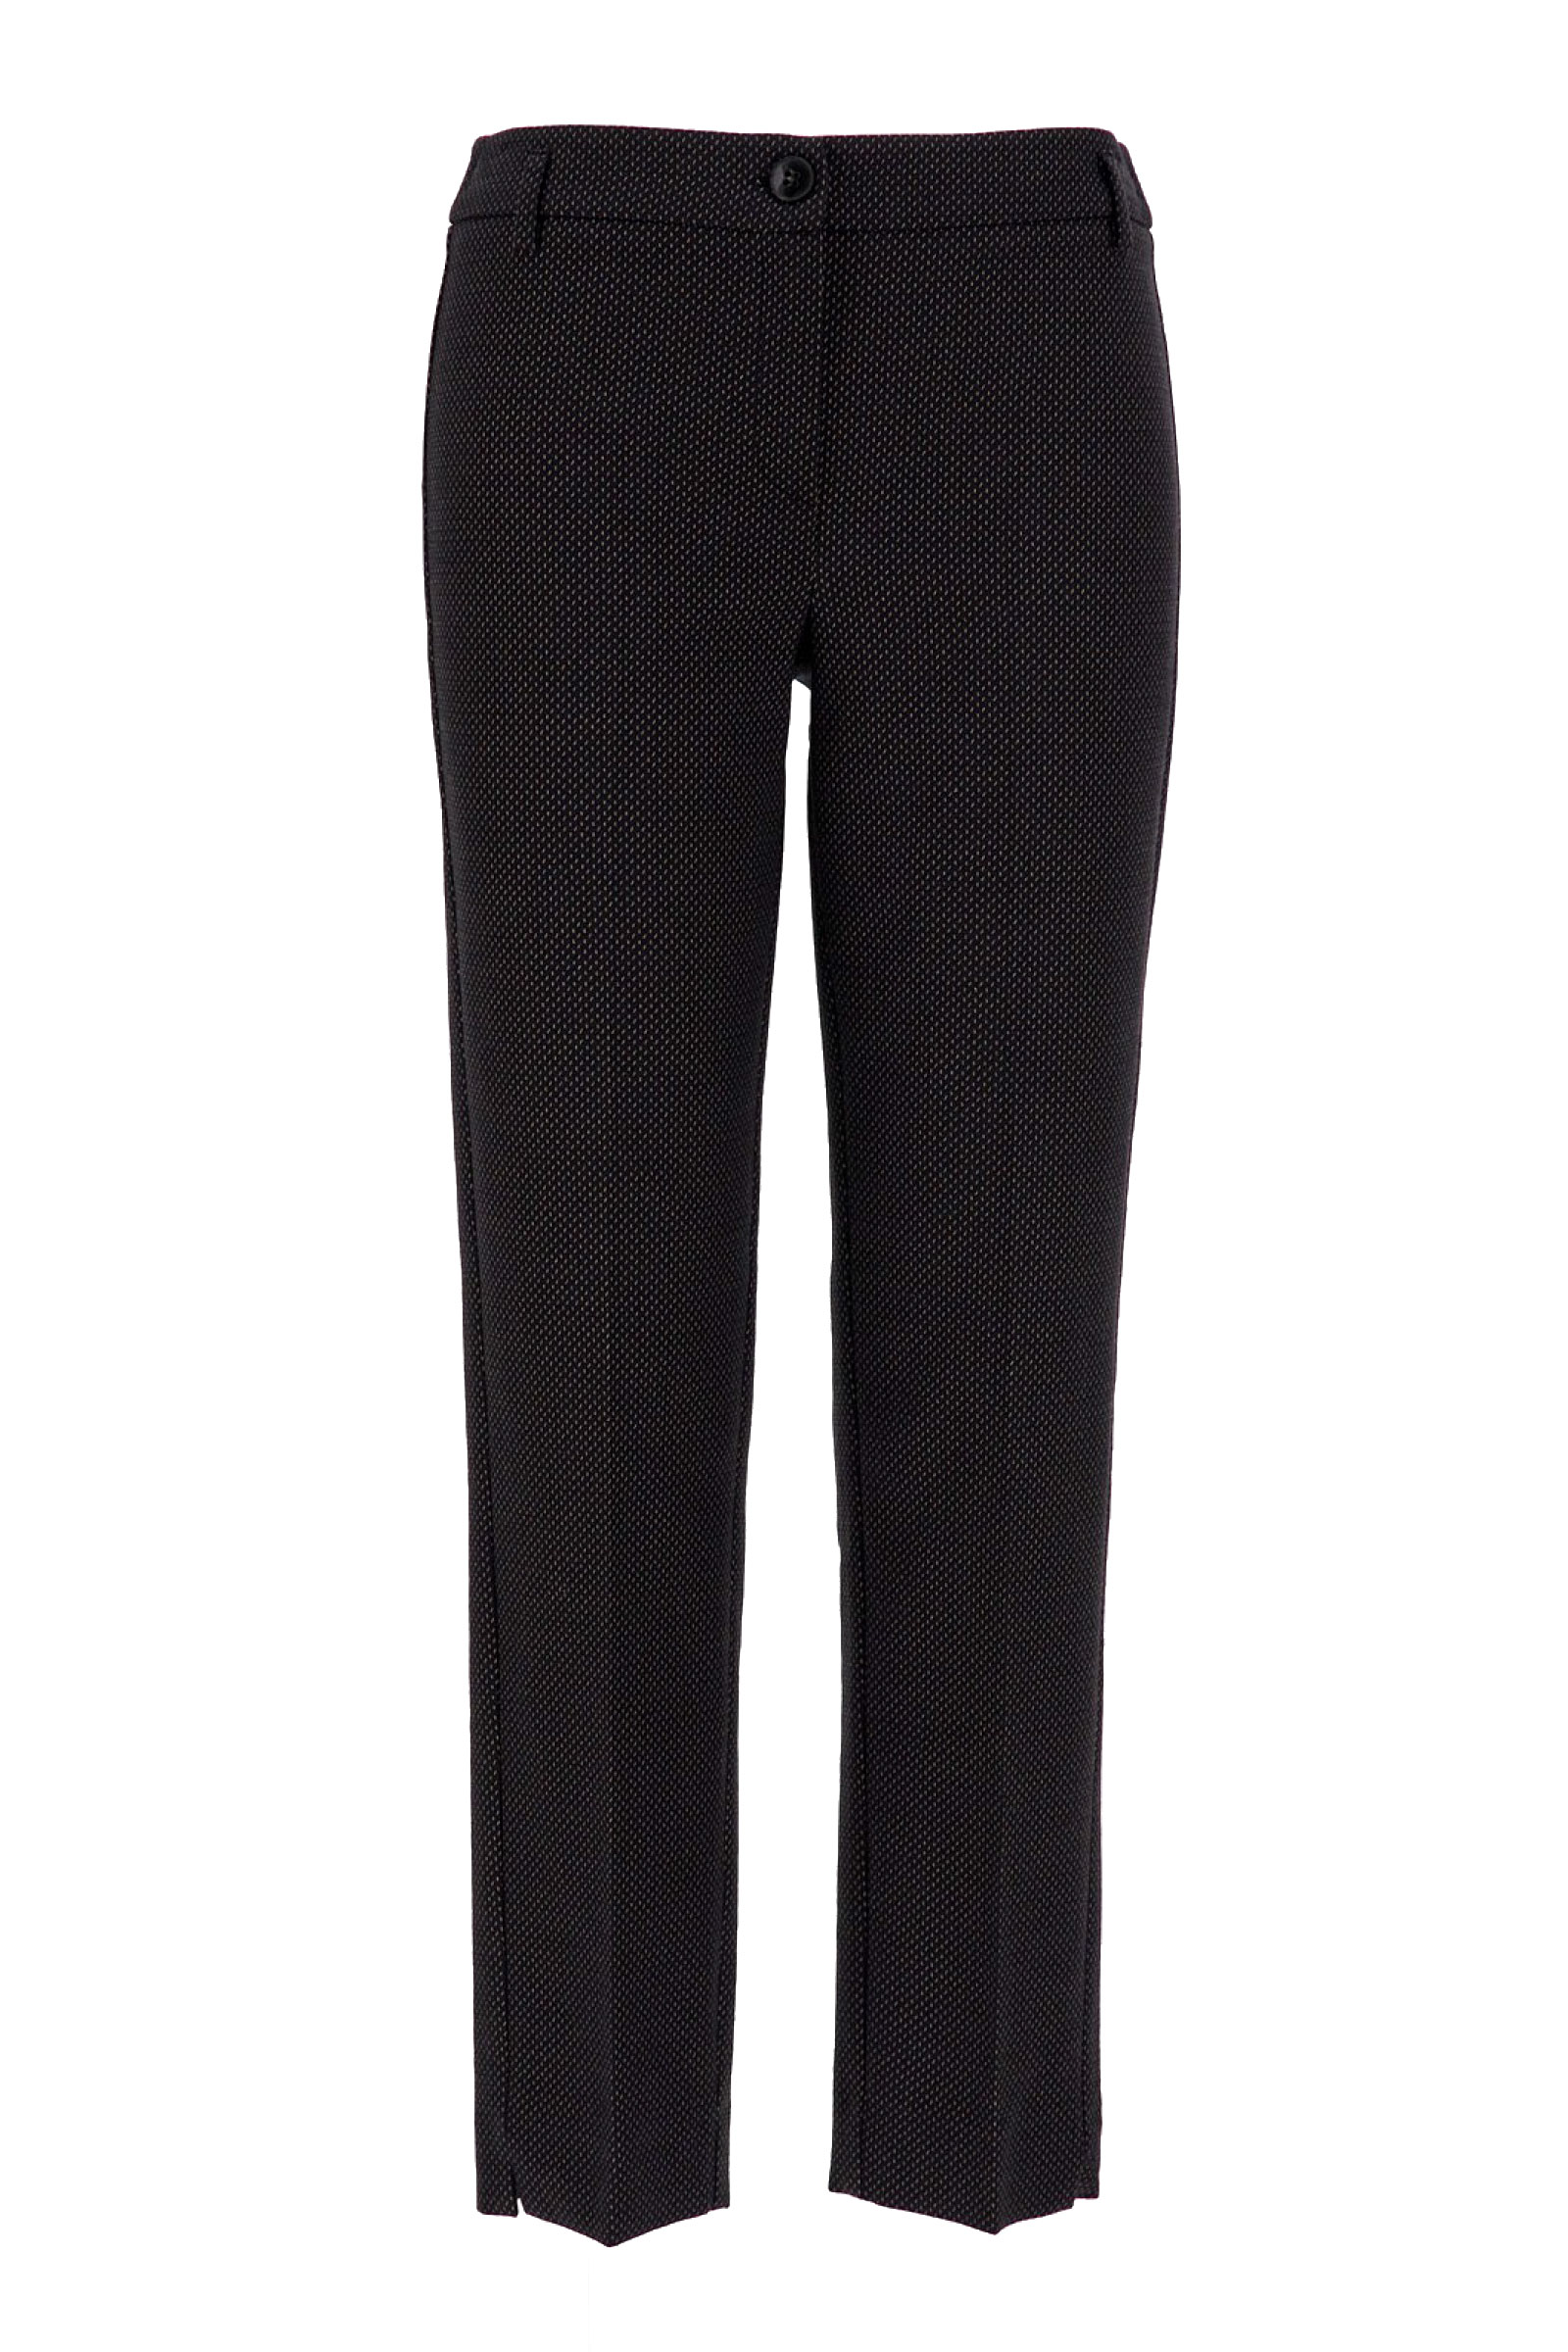 EMME MARELLA   Trousers   51361219200001